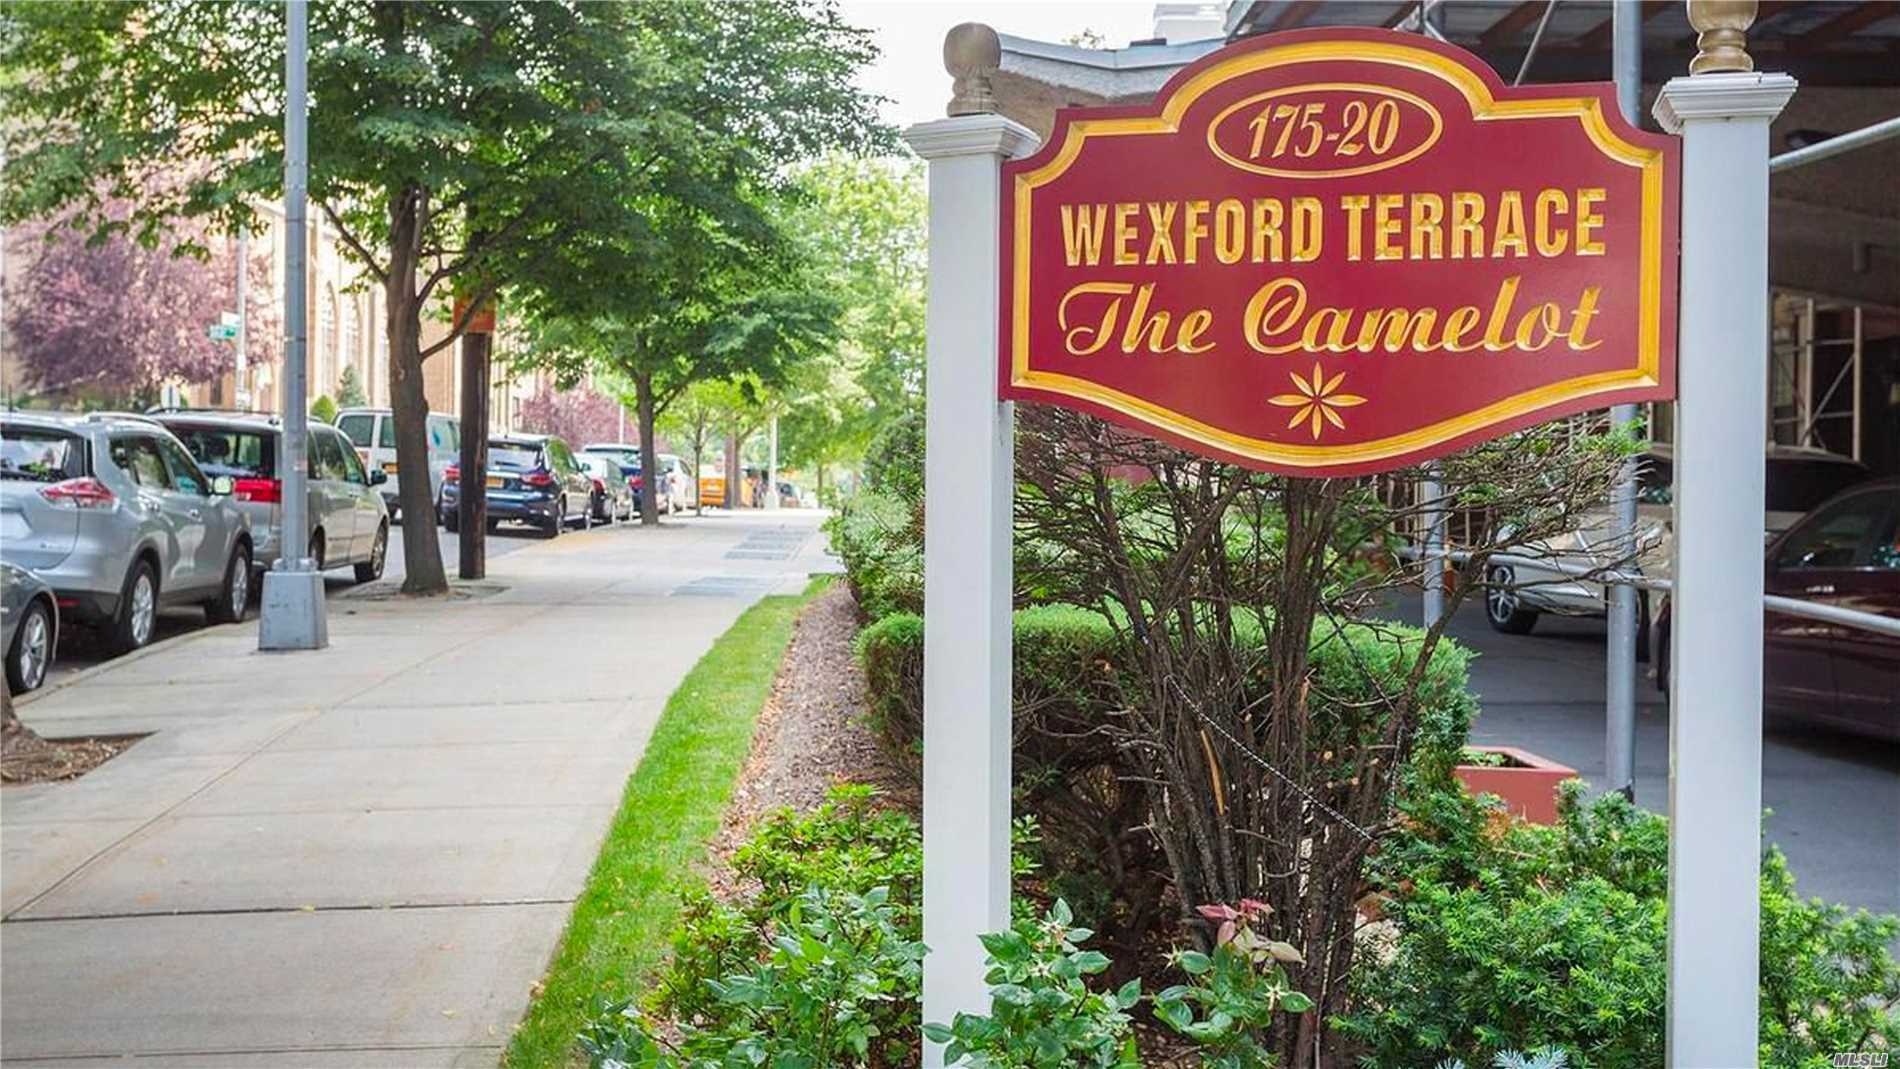 175-20 Wexford Ter, 5C - Jamaica Estates, New York